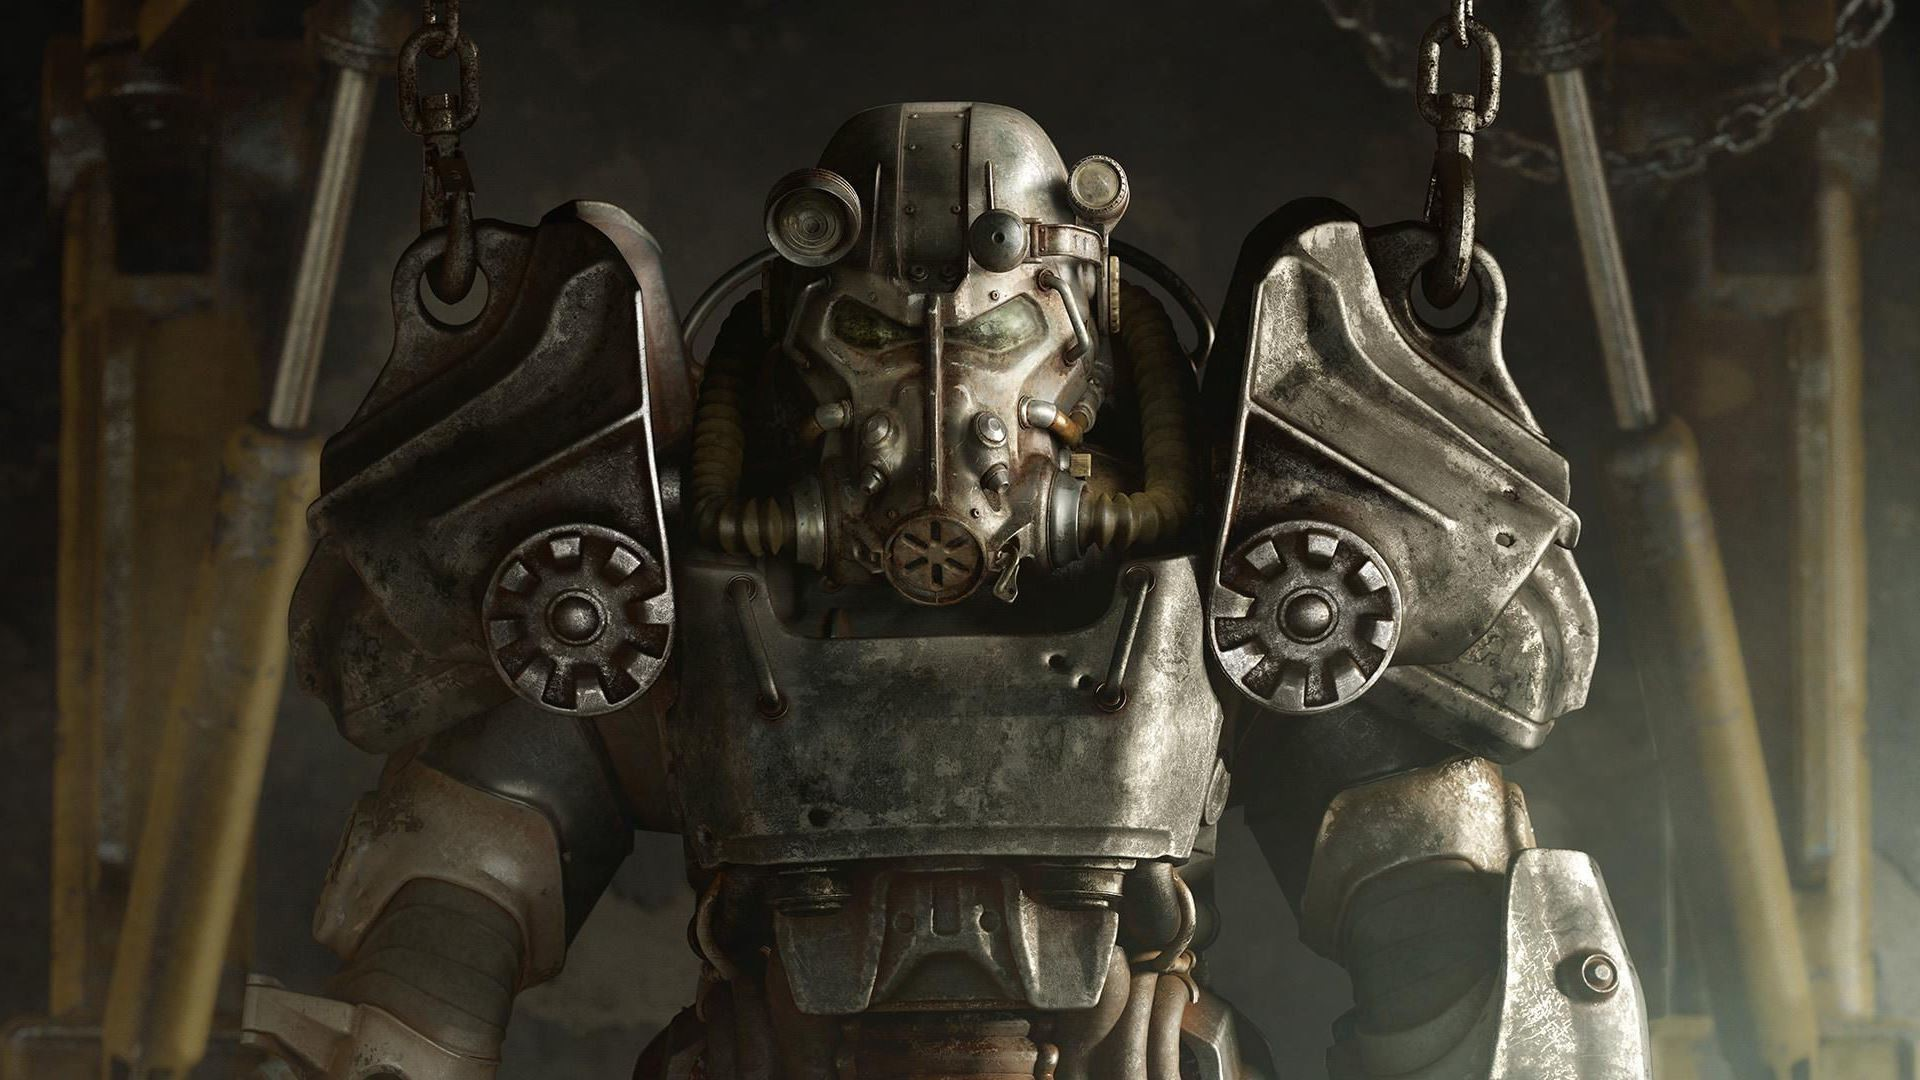 Fallout 4, Bethesda Softworks, Brotherhood Of Steel, Nuclear, Apocalyptic,  Video Games, Fallout Wallpapers HD / Desktop and Mobile Backgrounds